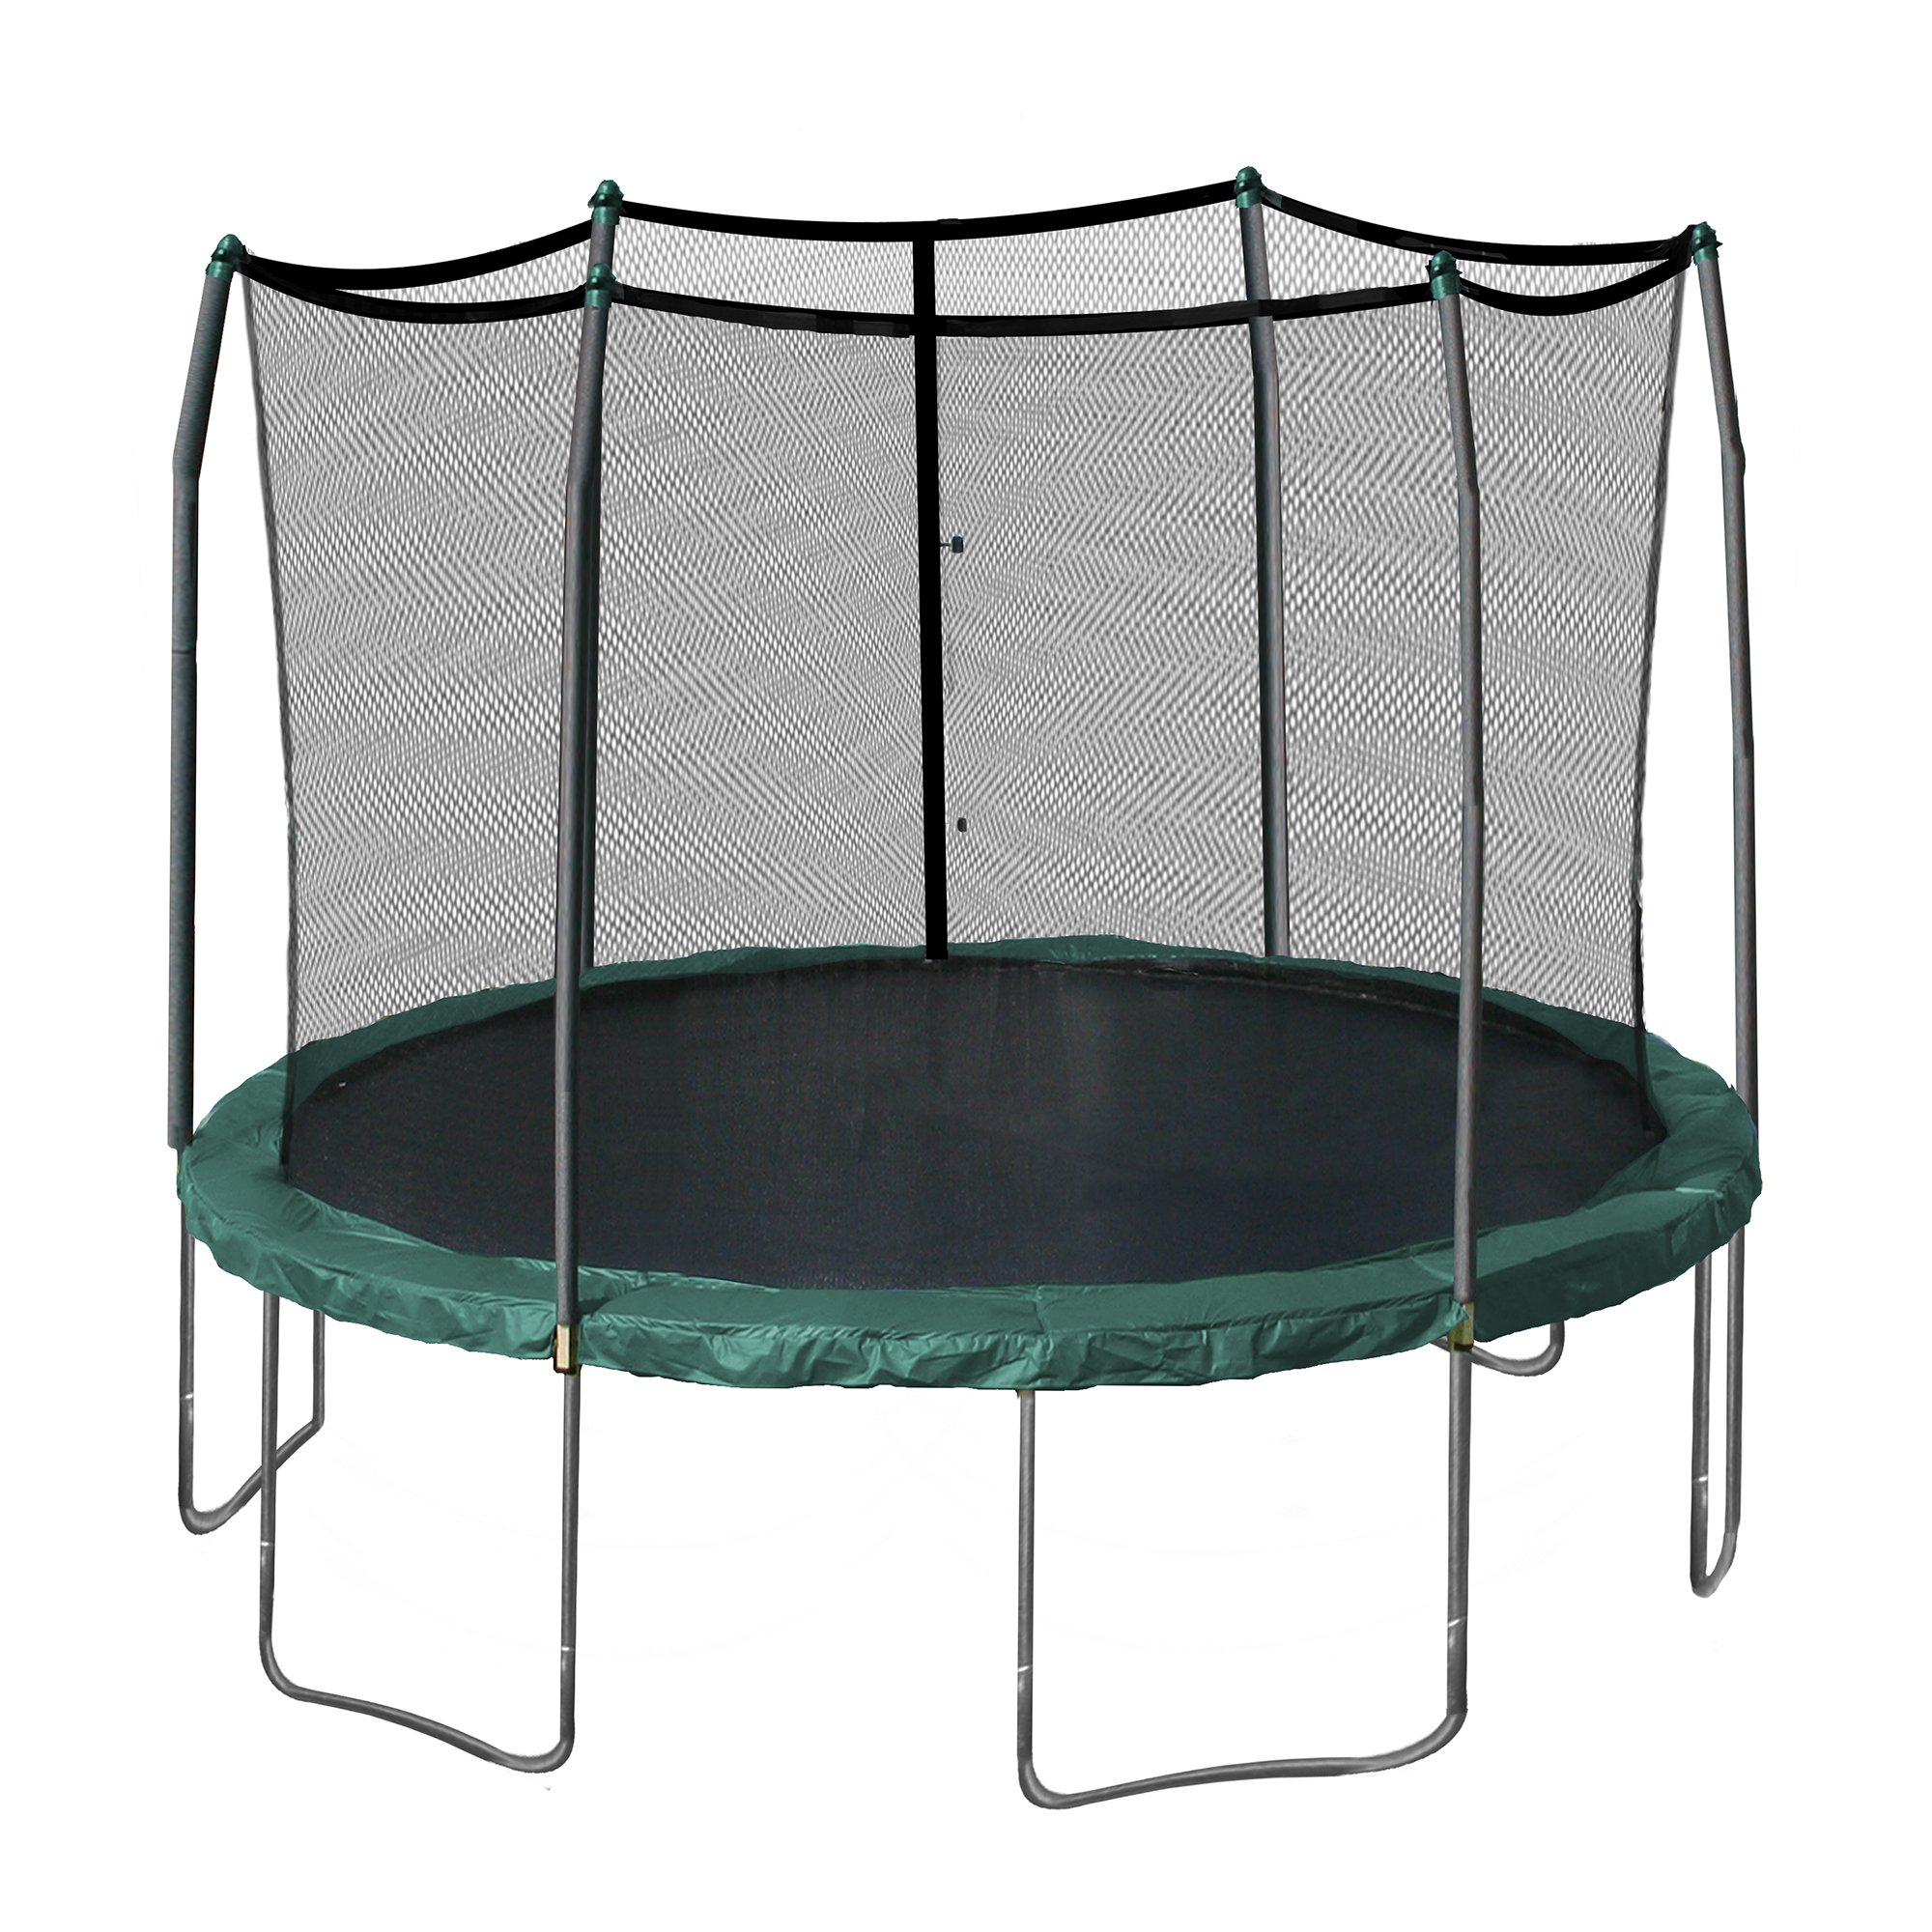 Skywalker 12-Feet Round Trampoline and Enclosure Combo with Spring Pad, Green by Skywalker Trampolines